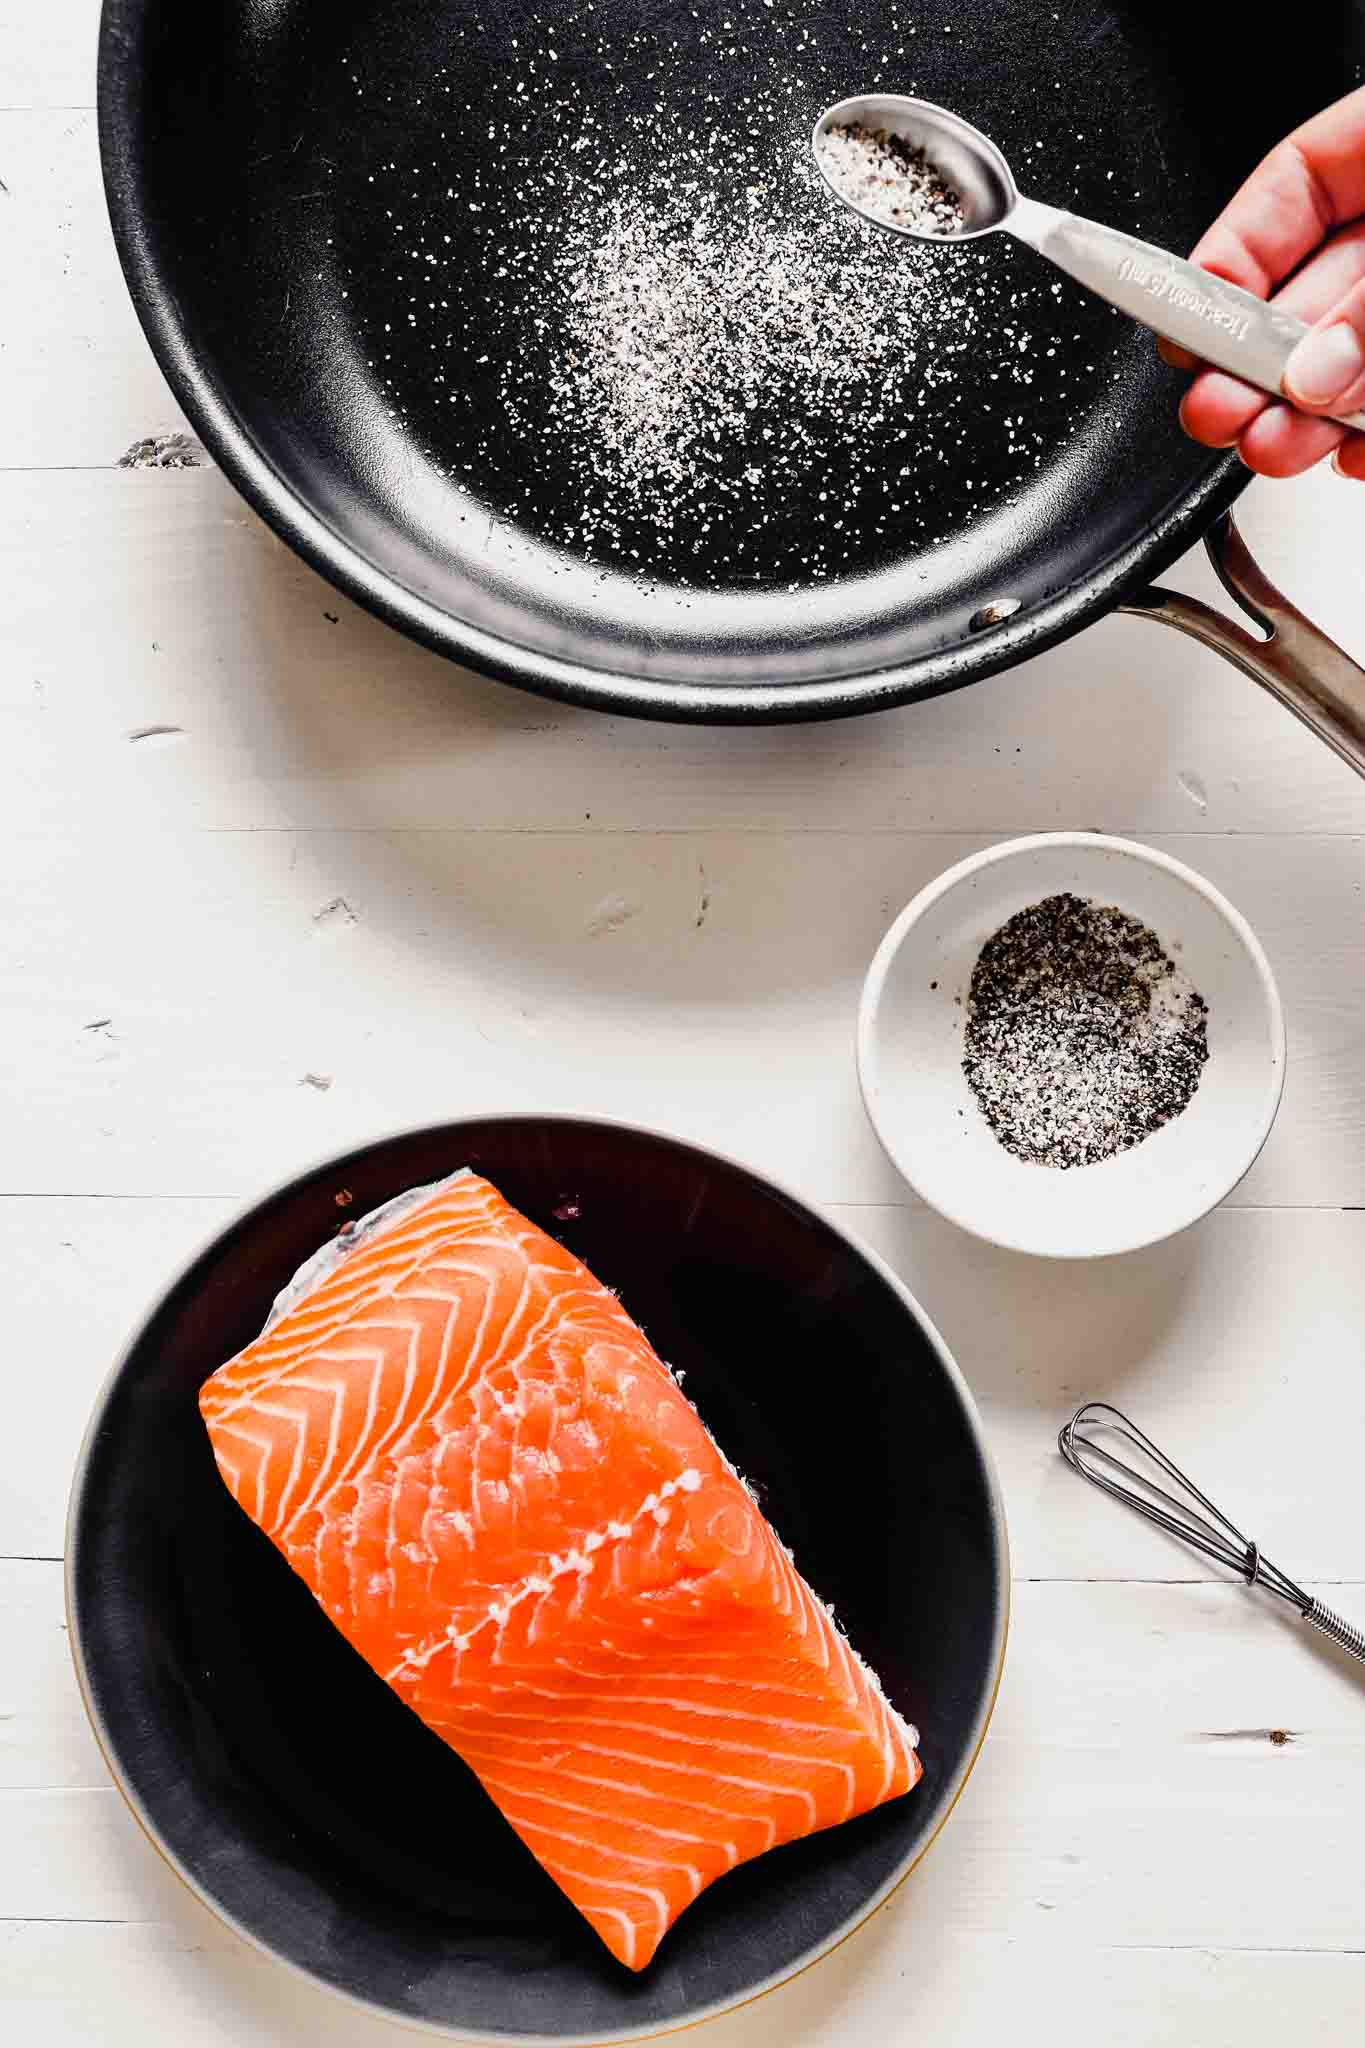 overhead image of a filet of salmon on a dark plate with a skillet up to the top and someone sprinkling salt and pepper into the skillet.